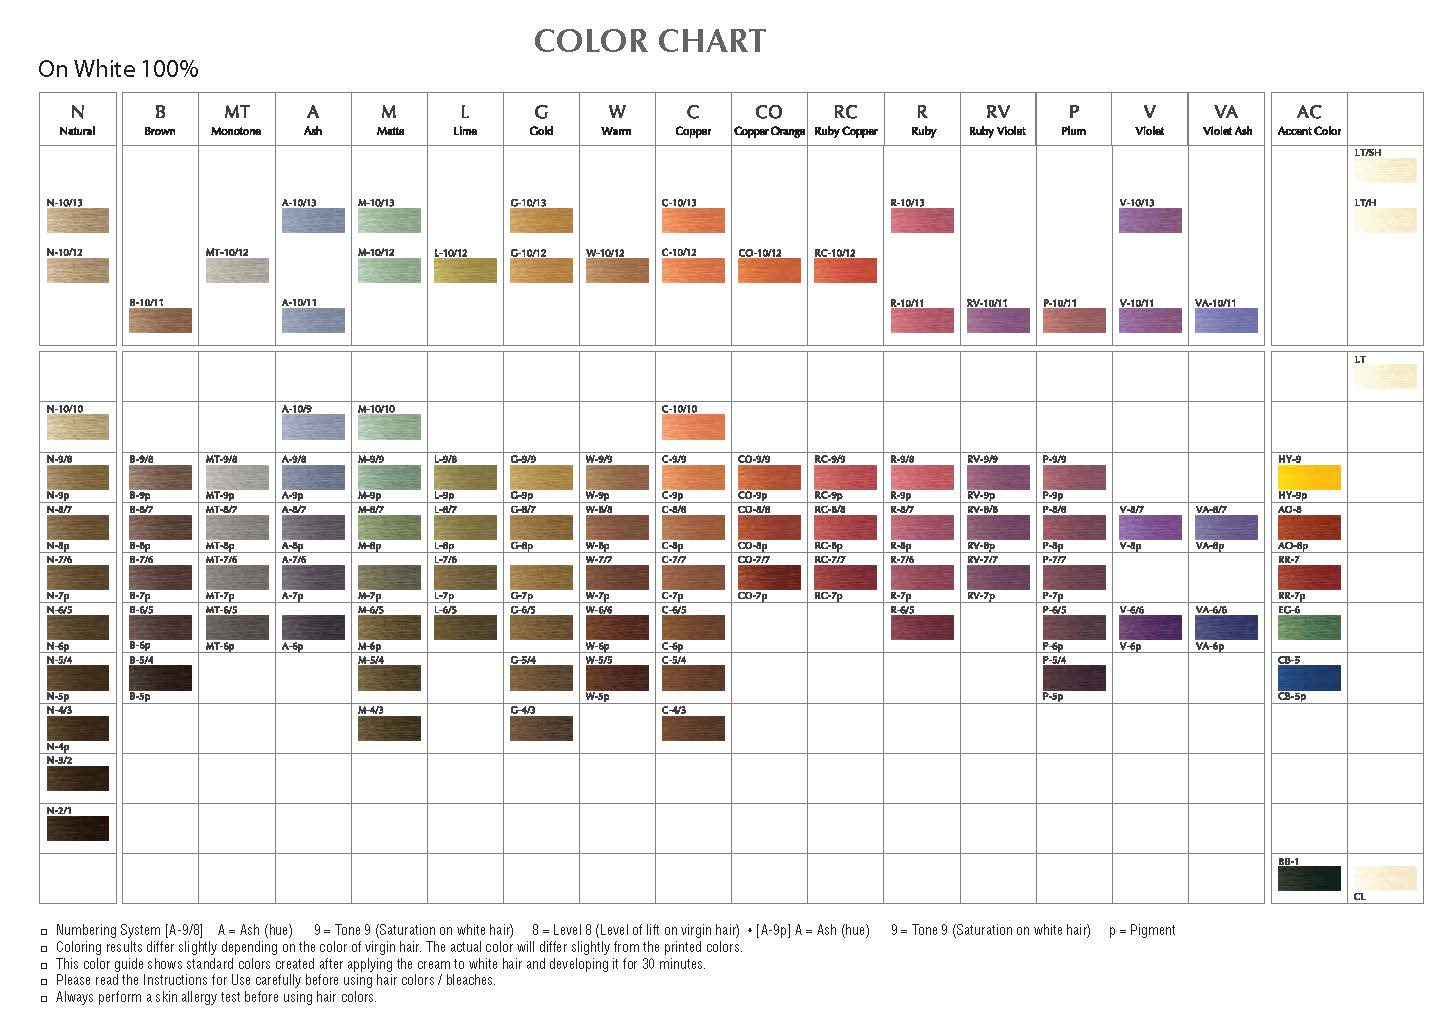 pm_color_chart.jpg